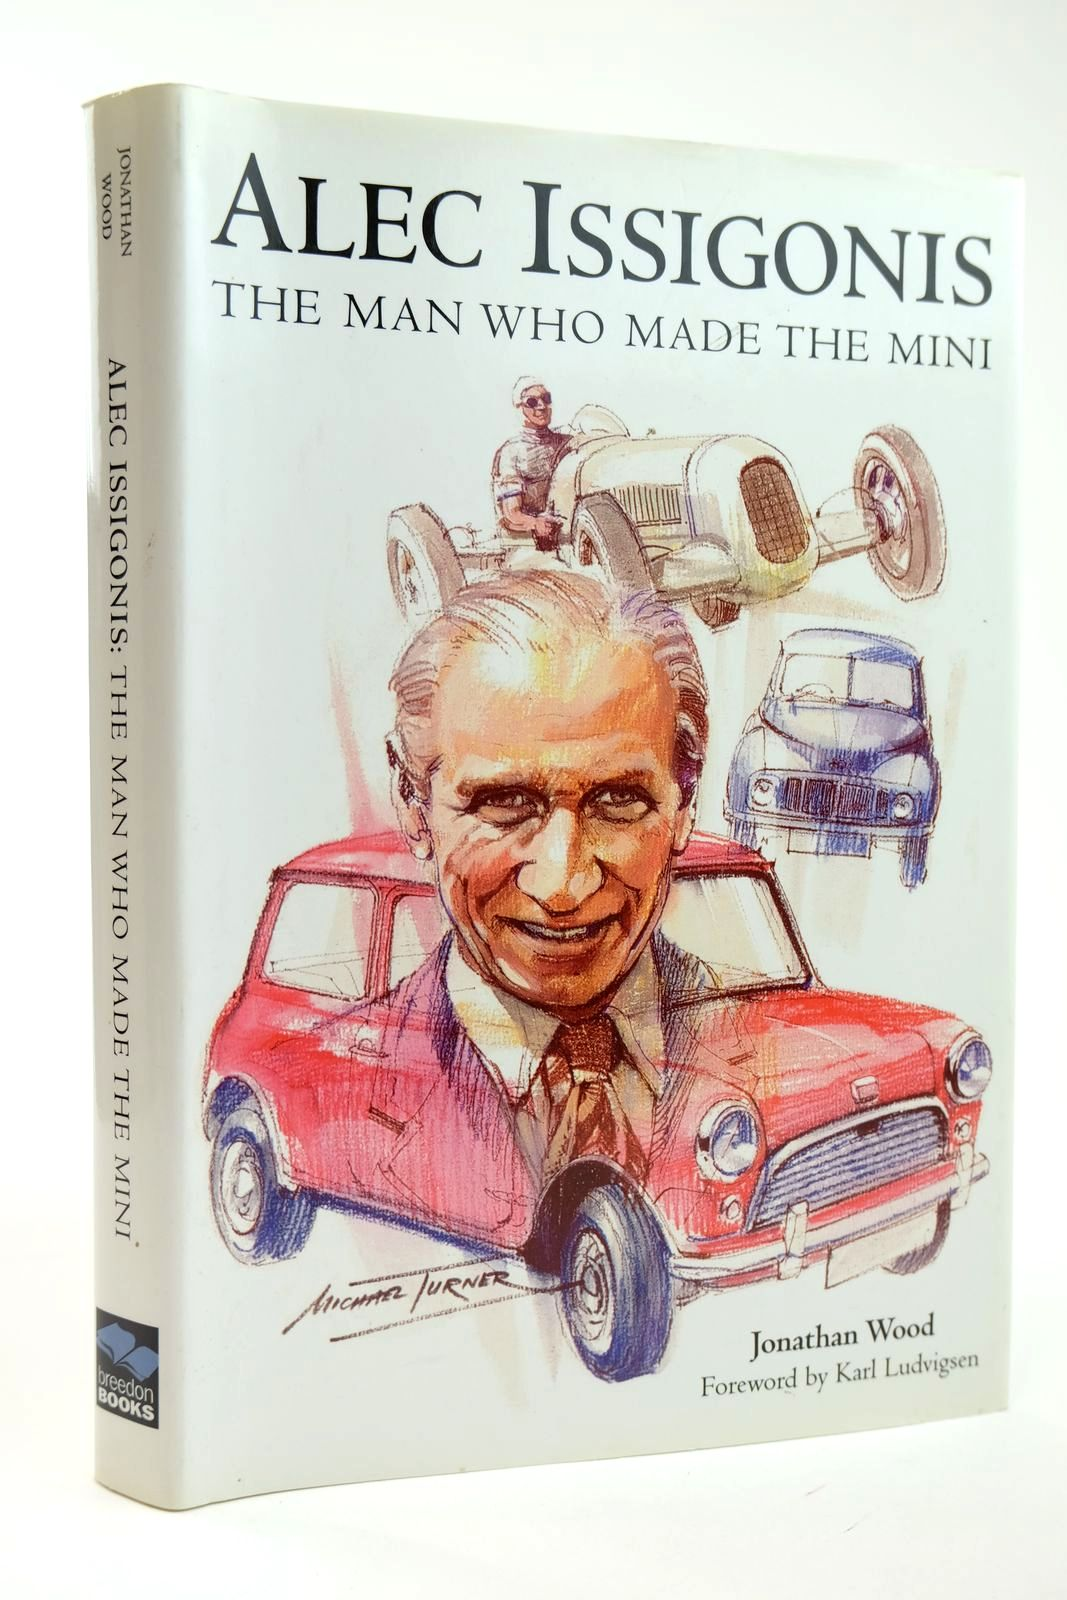 Photo of ALEC ISSIGONIS THE MAN WHO MADE THE MINI written by Wood, Jonathan published by Breedon Books Publishing Co. (STOCK CODE: 2131822)  for sale by Stella & Rose's Books